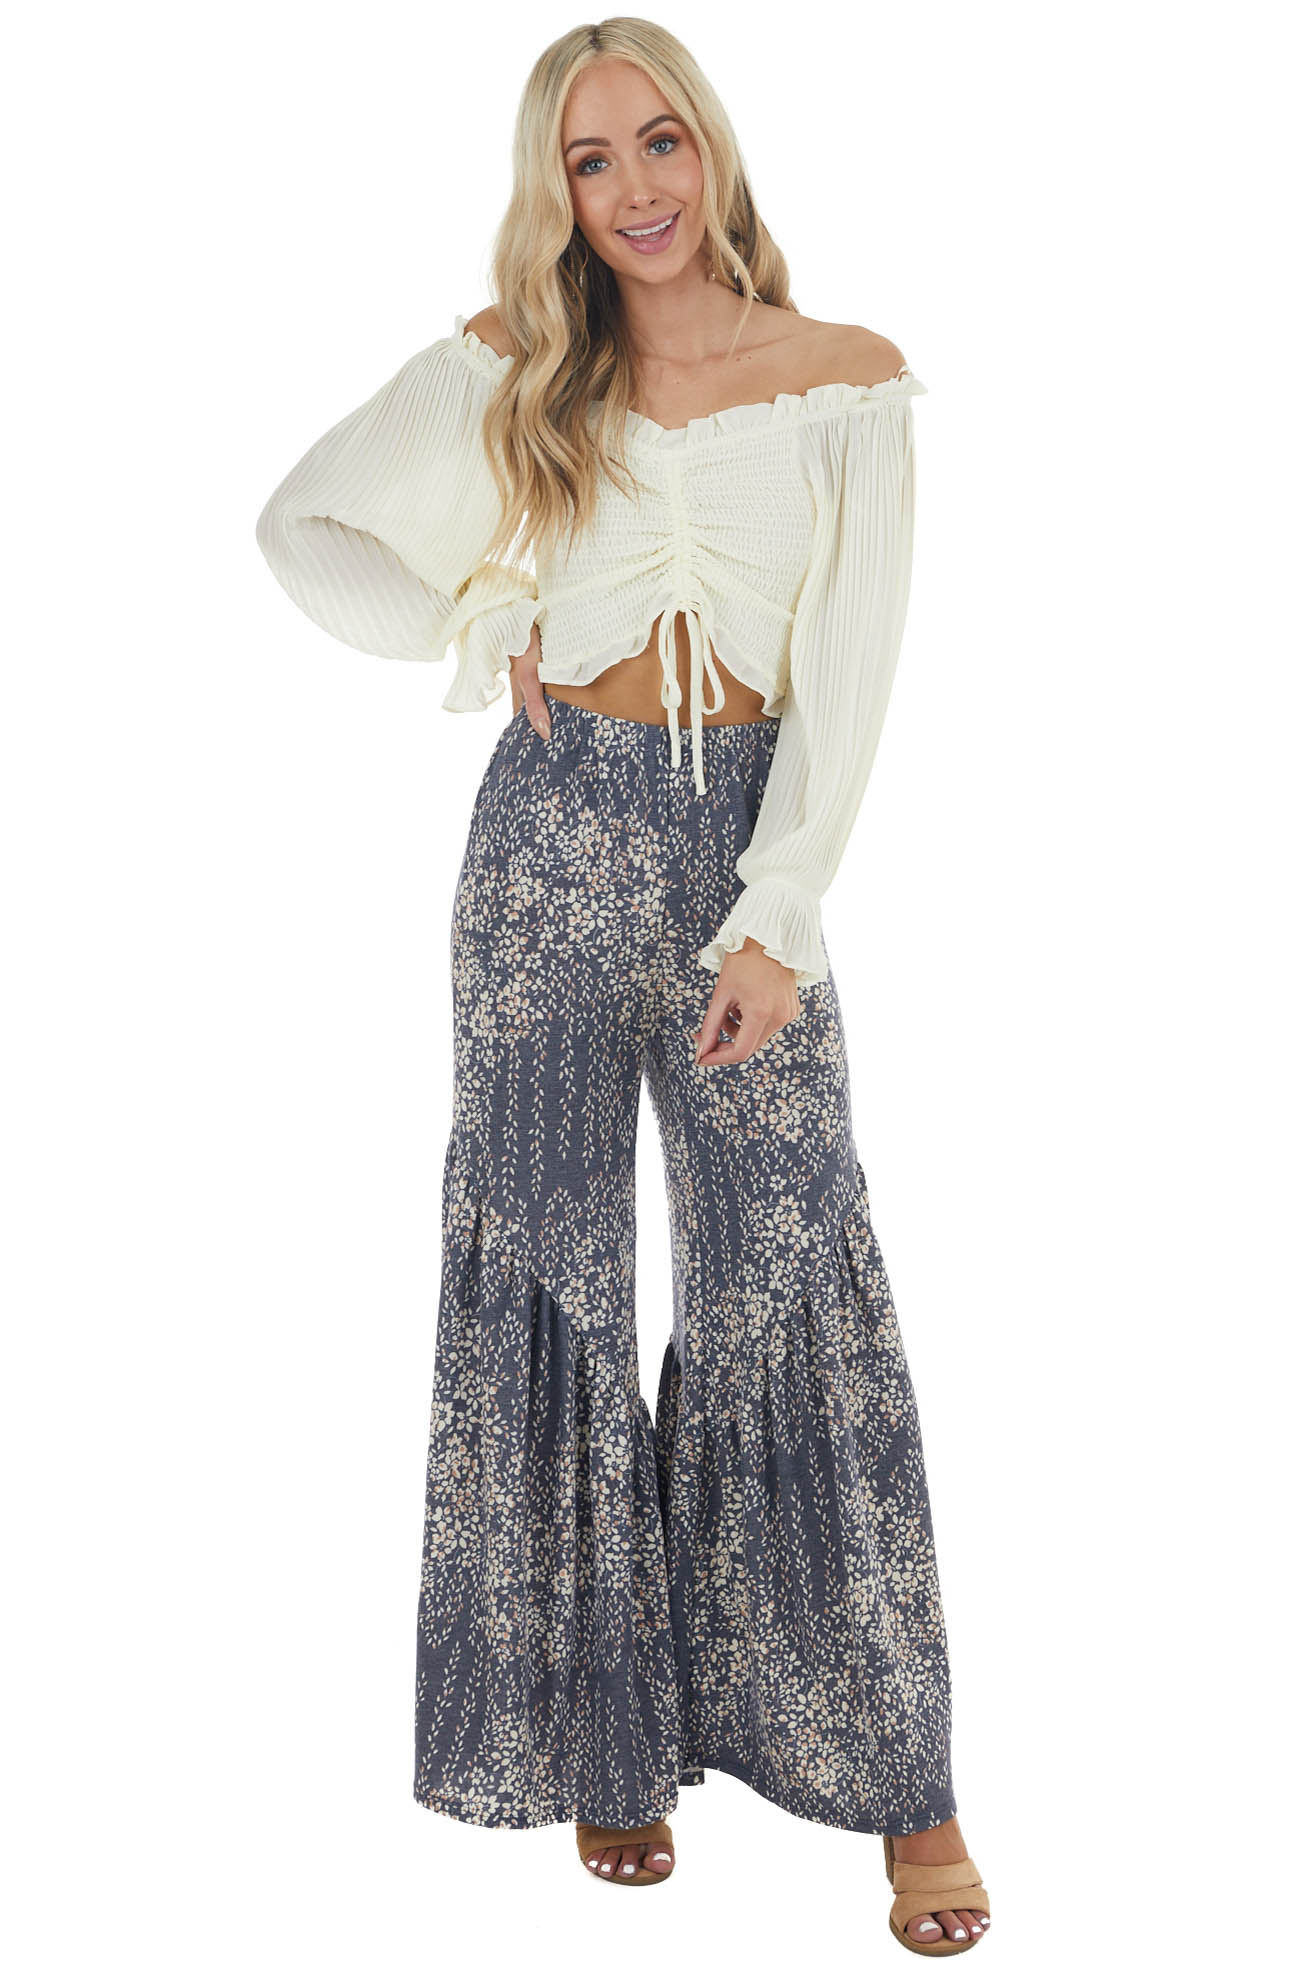 Faded Navy and Ivory Floral Stretchy Bell Bottom Pants